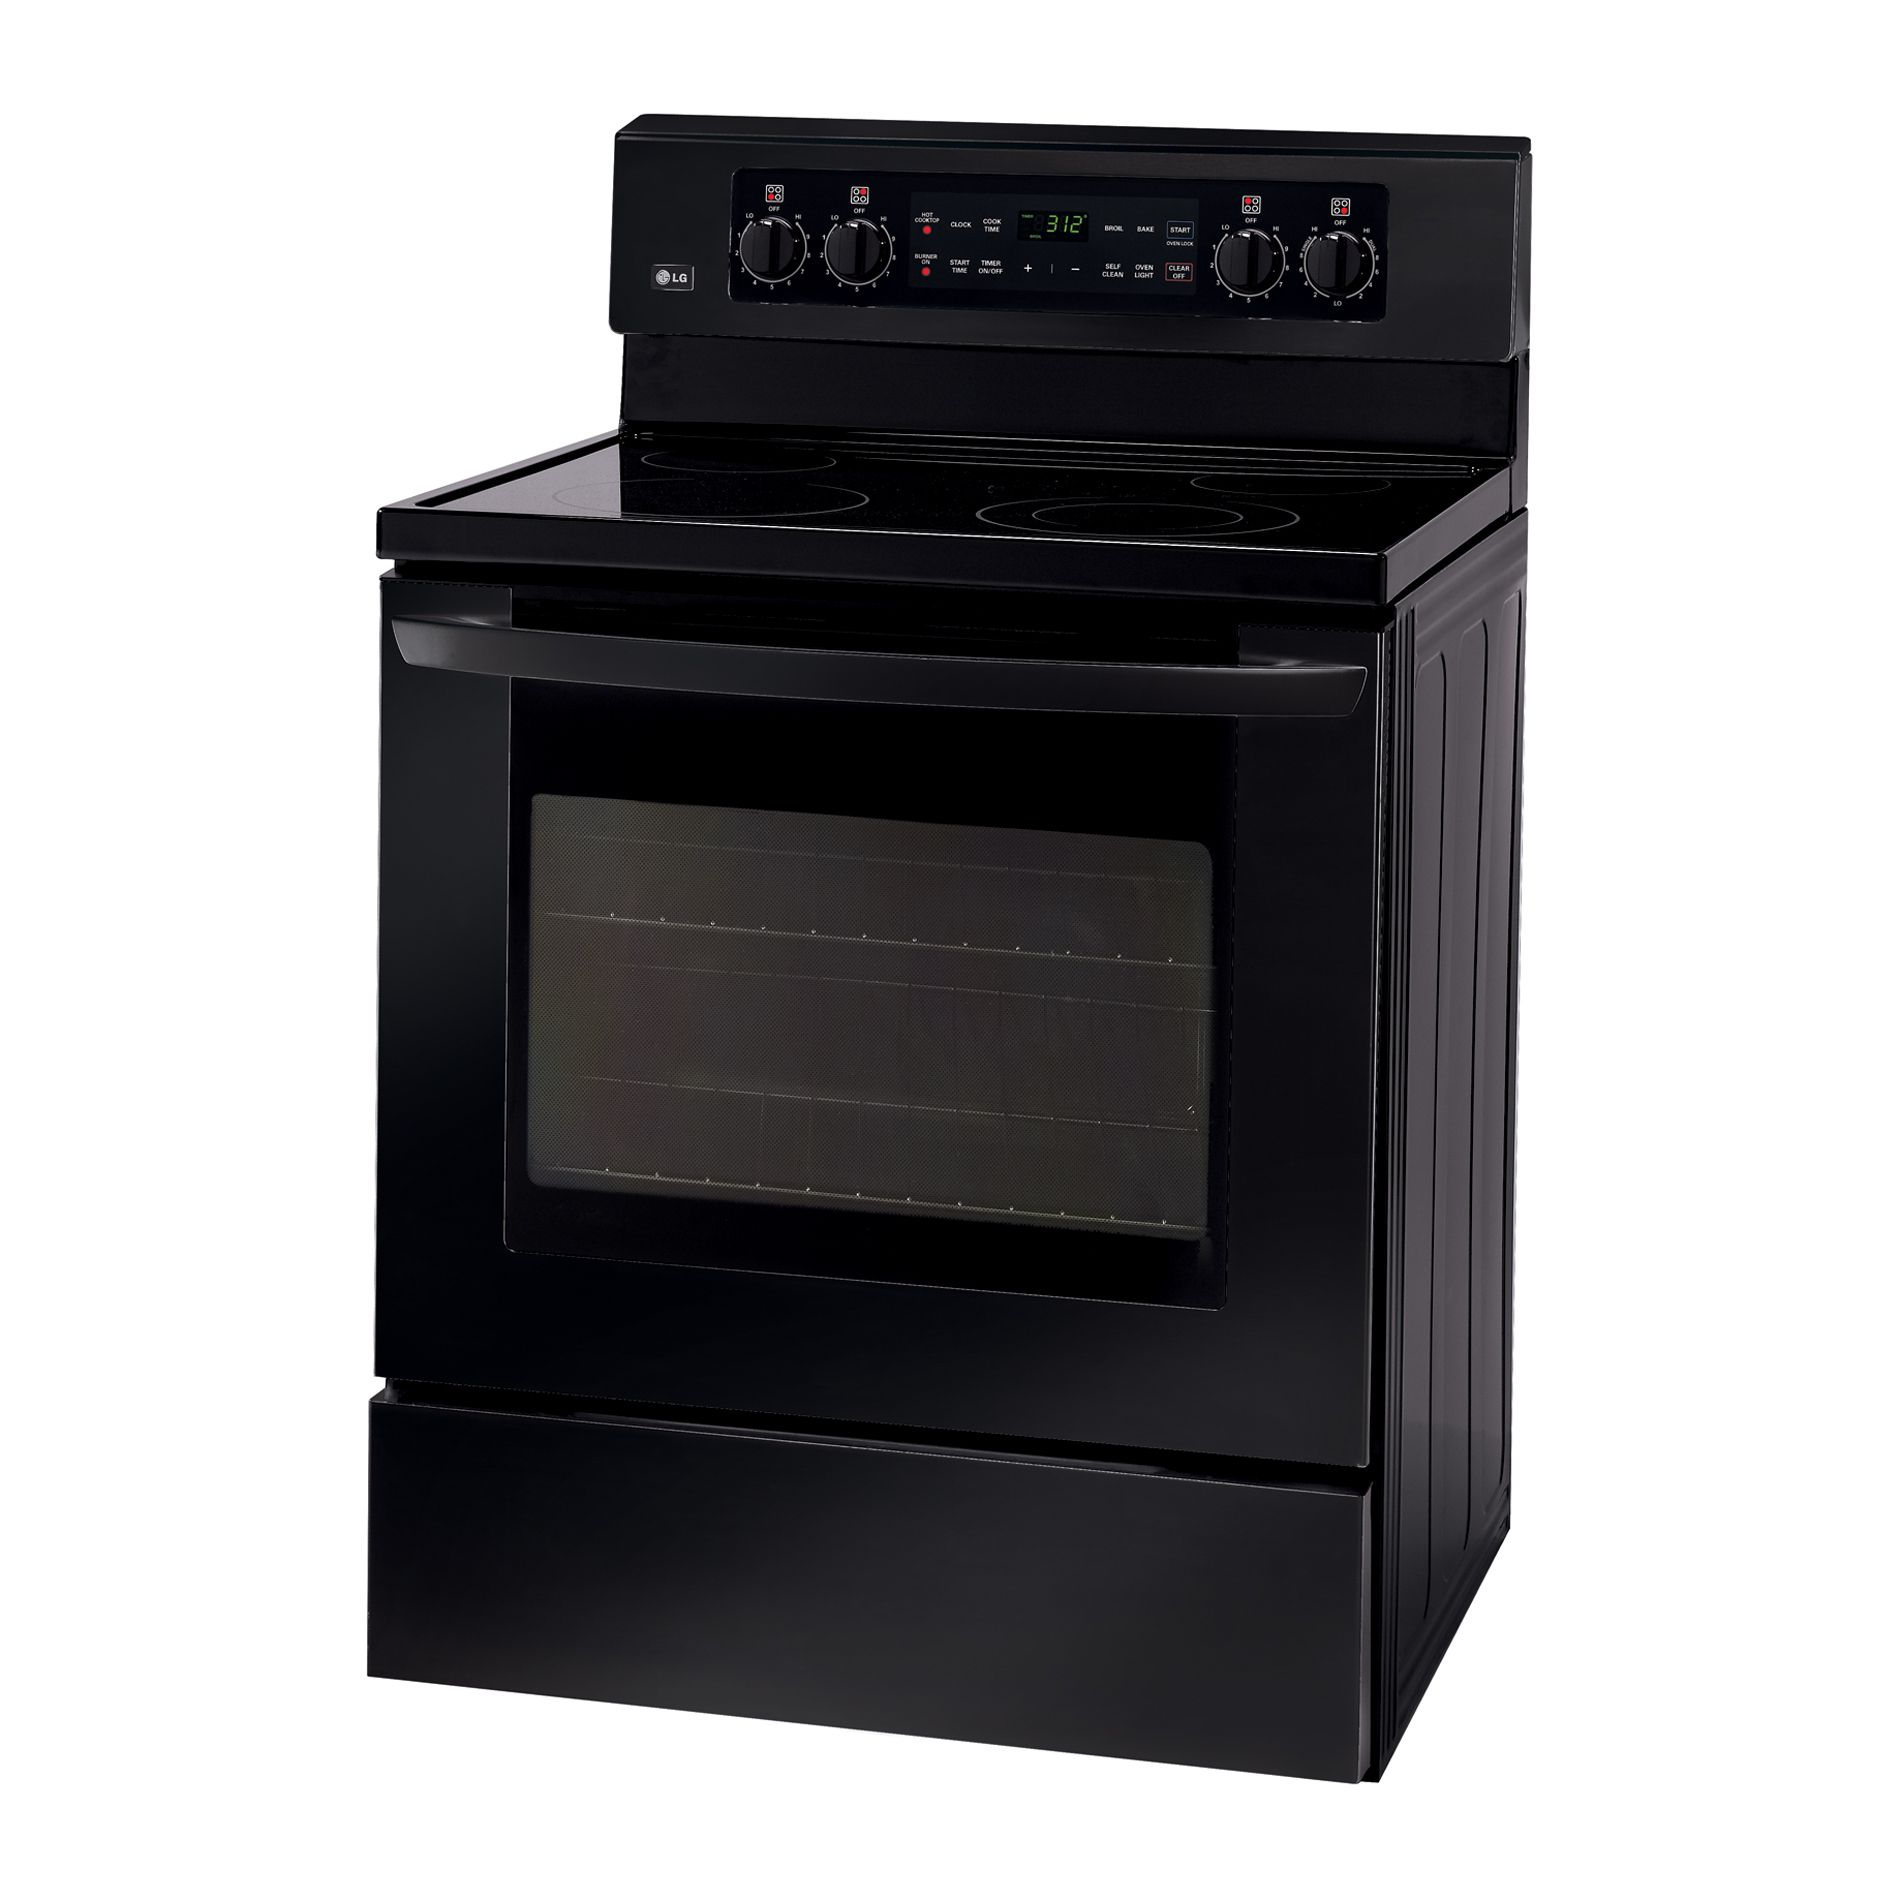 "LG 30"" Freestanding Electric Range"